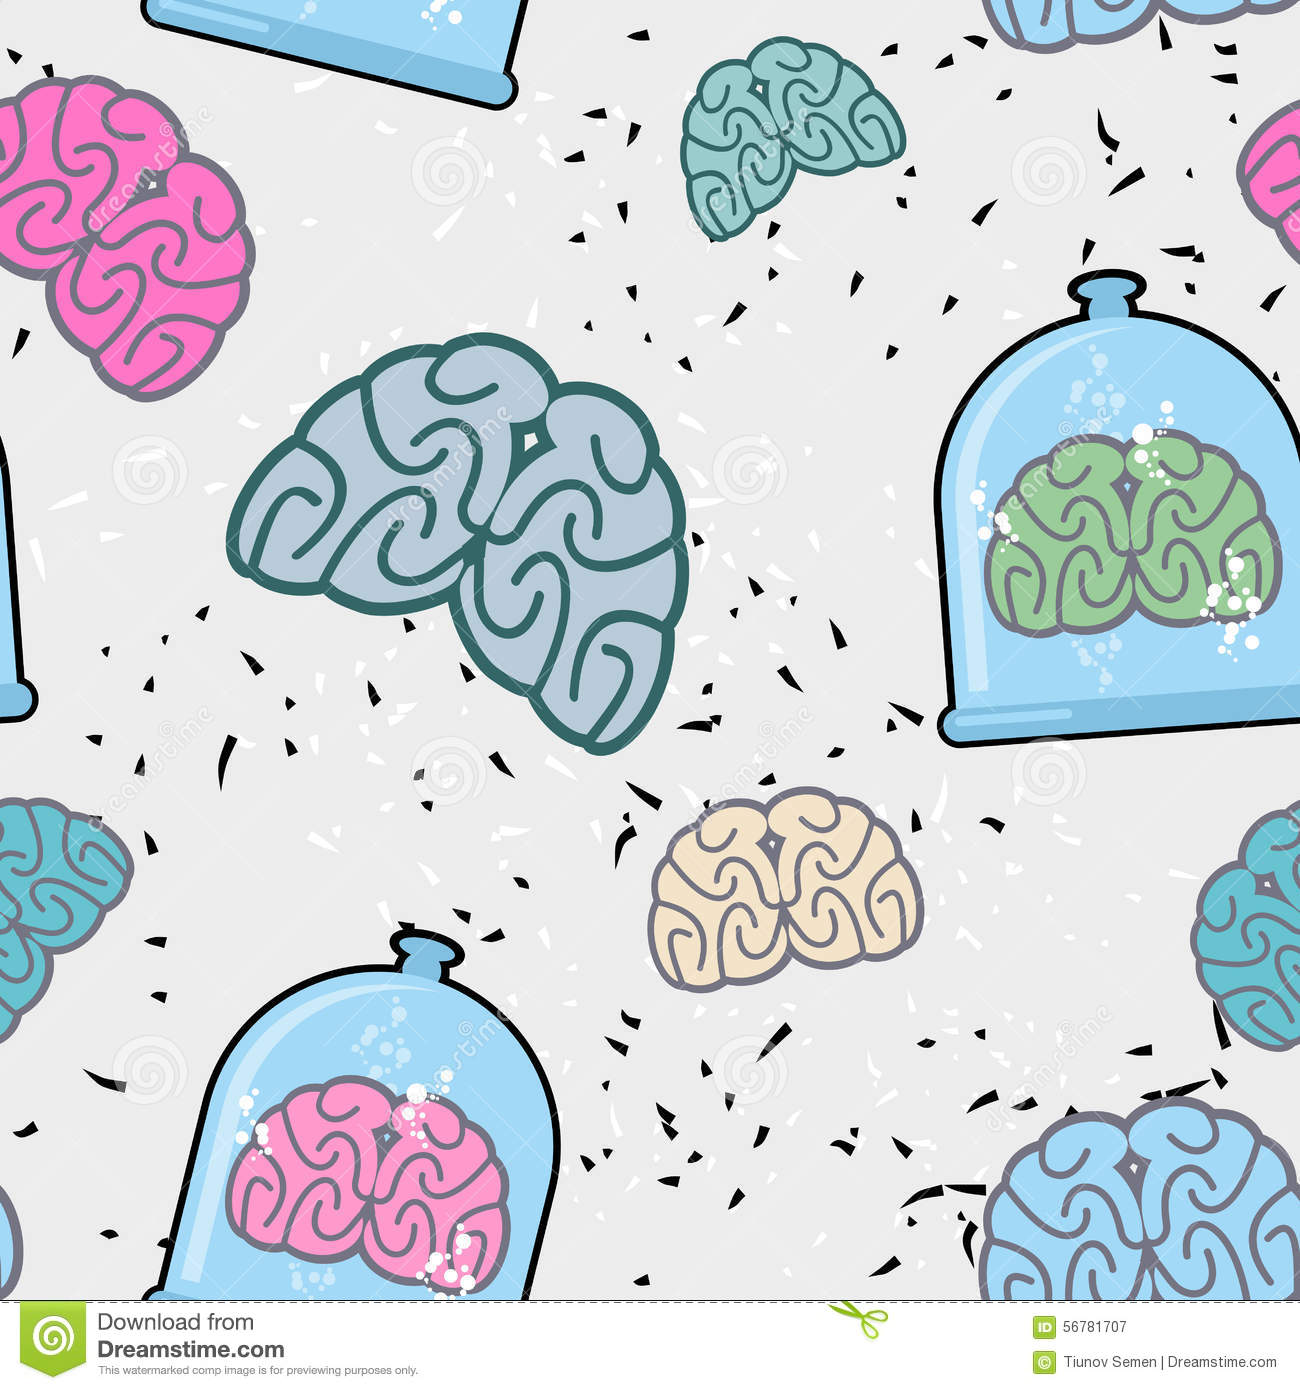 brain pattern wallpaper - photo #6